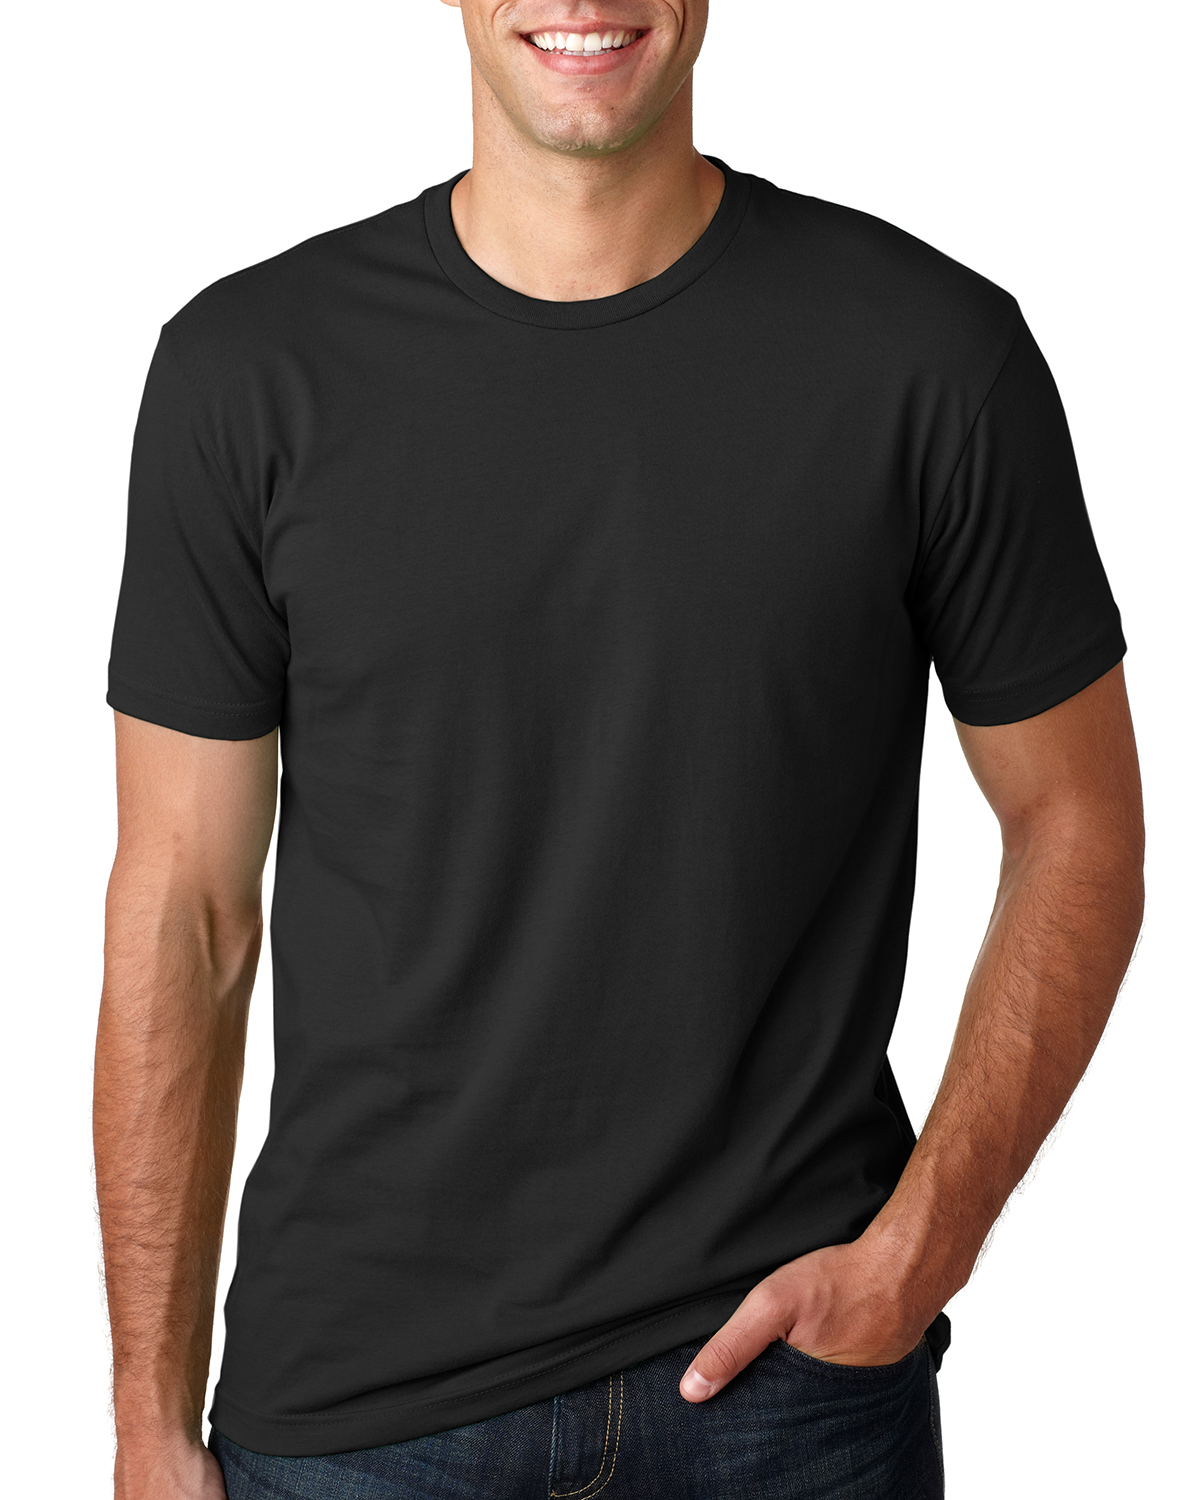 Next Level 3600 - Men's Fitted Short-Sleeve Crew